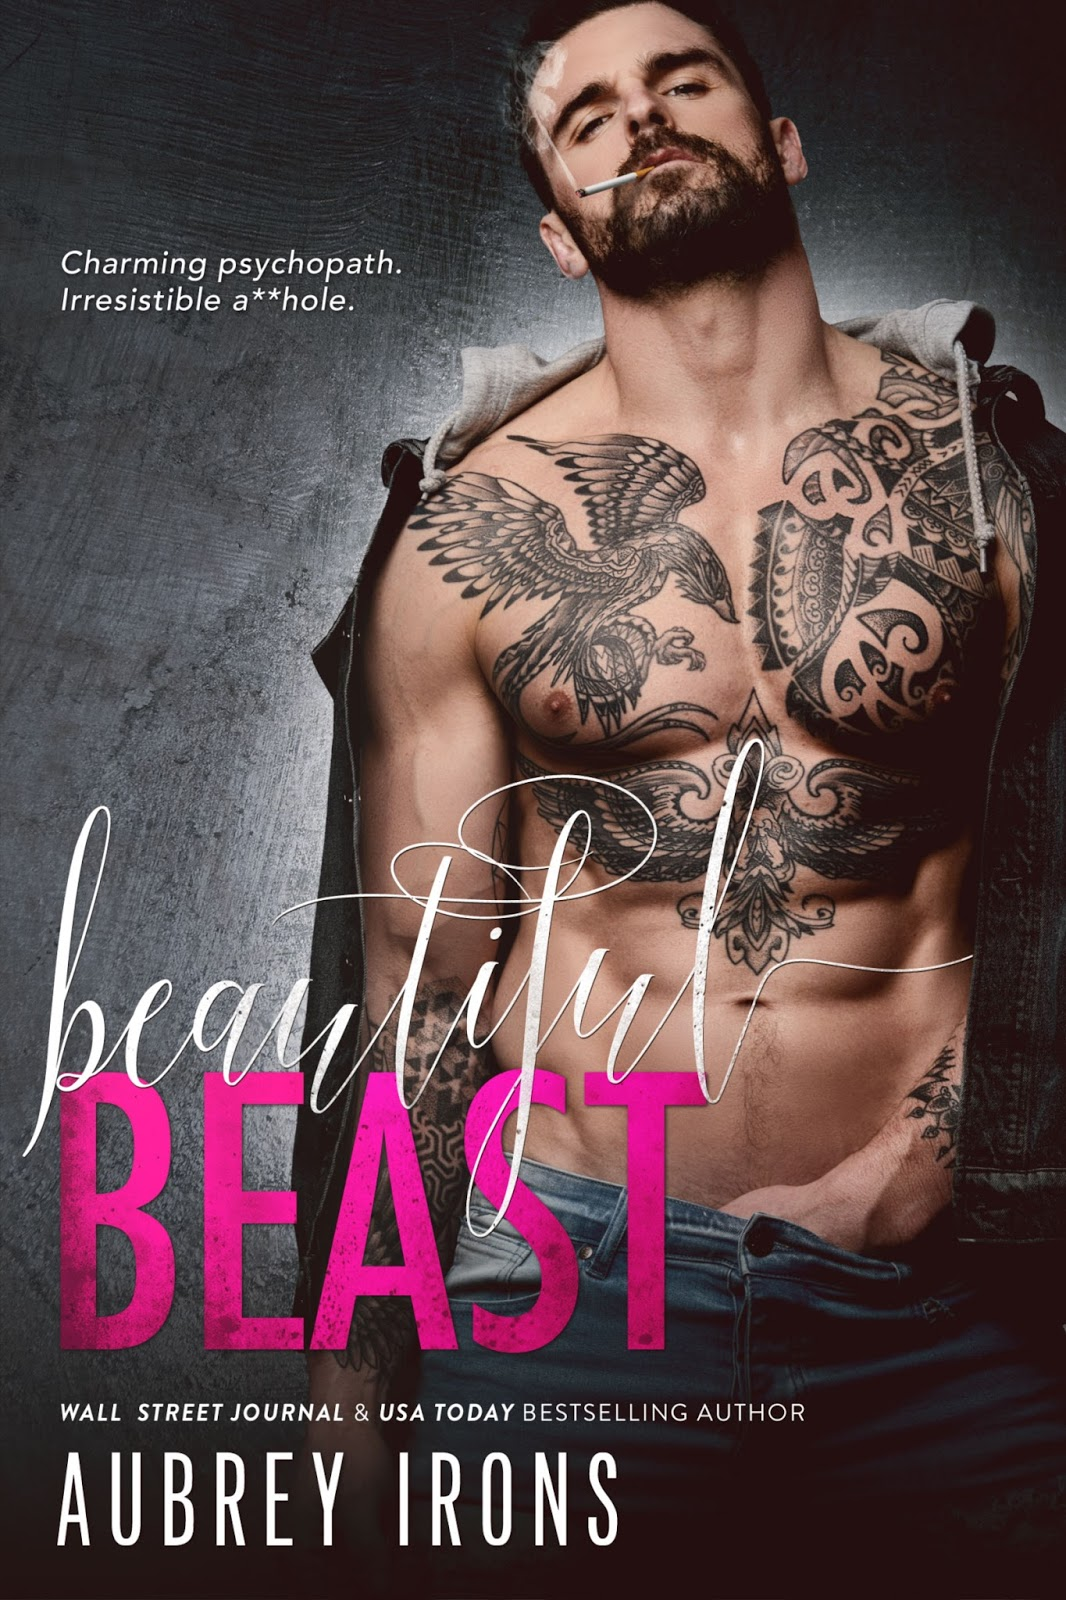 Love Aubrey Book Cover : Cover reveal beautiful beast by aubrey irons